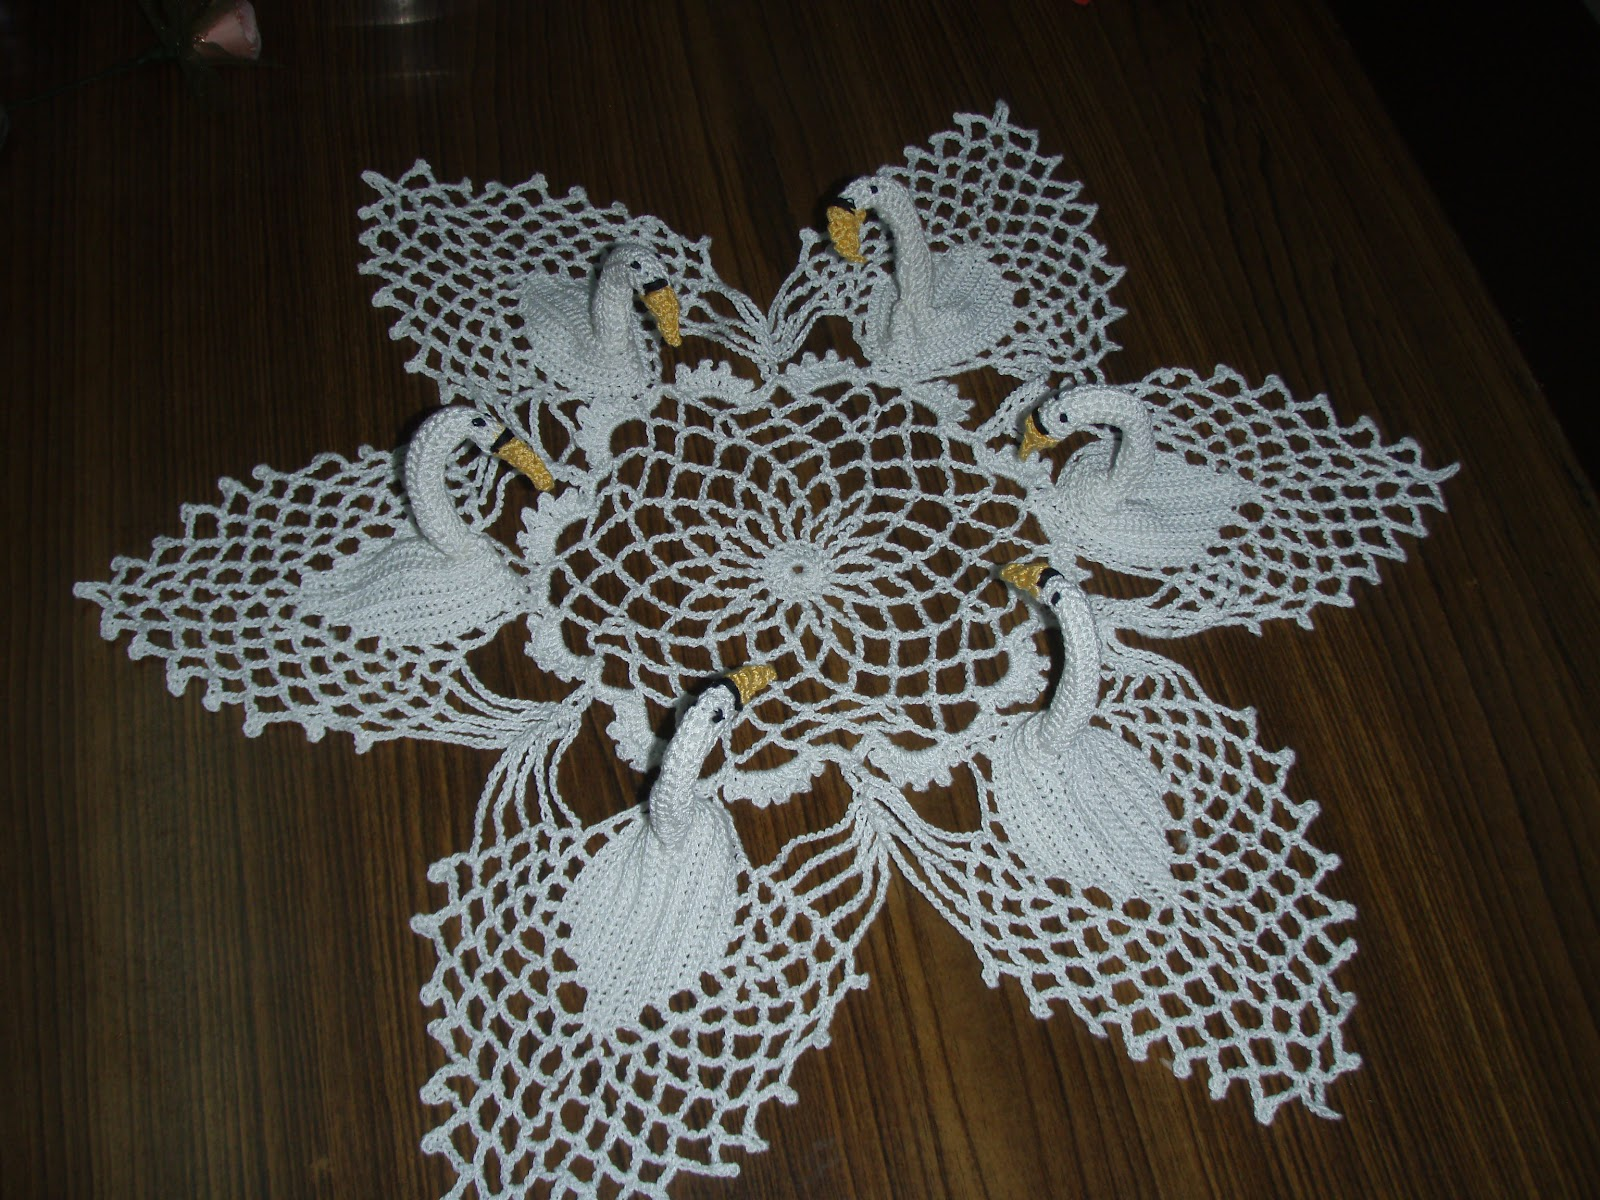 Crocheting Doilies Patterns : SIMPLE CROCHETED DOILY PATTERNS - Easy Crochet Patterns